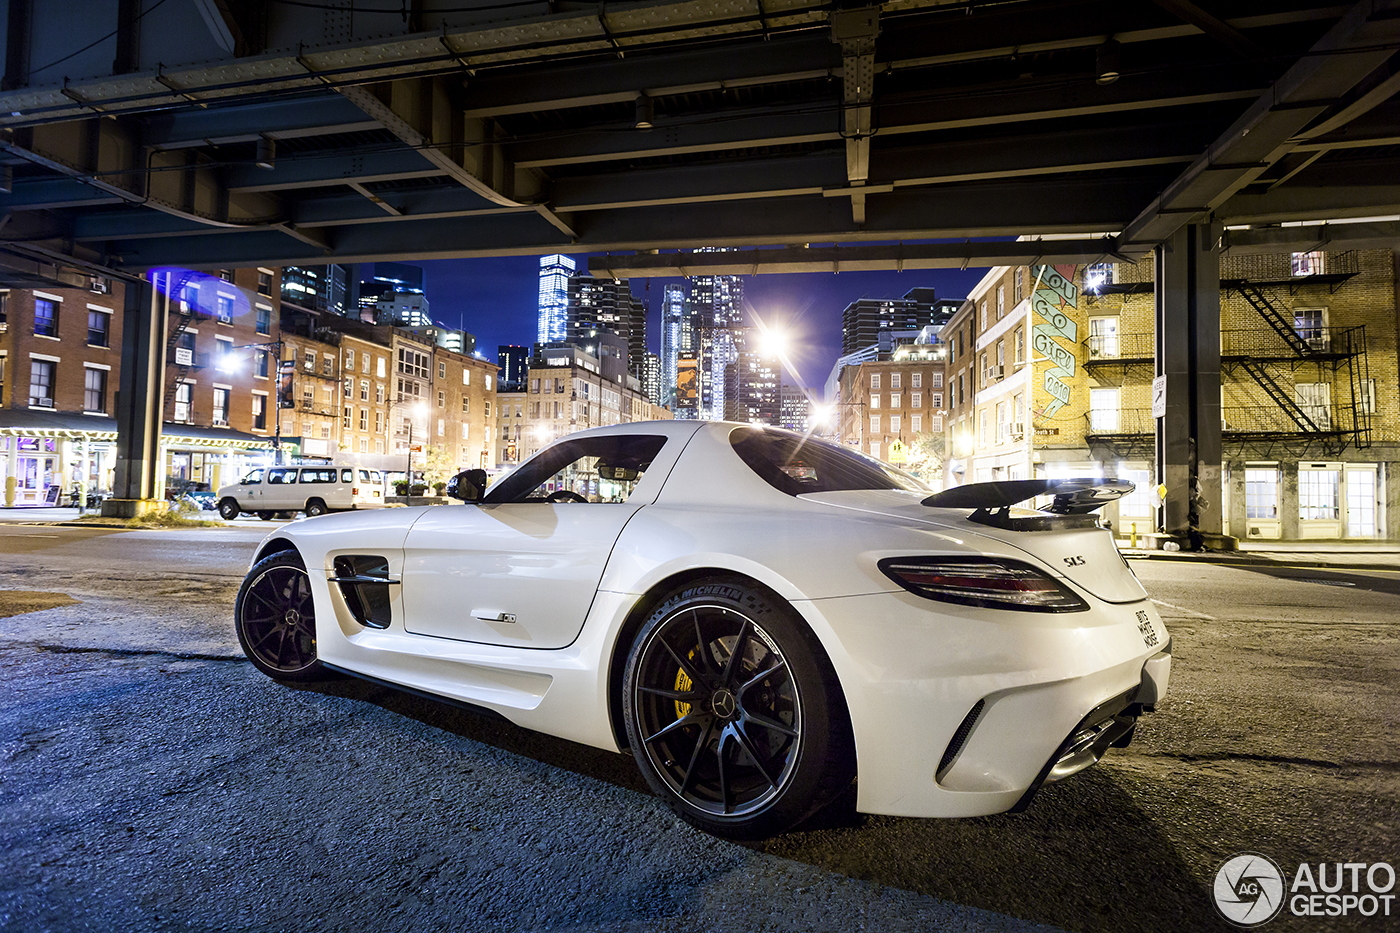 Mercedes benz sls amg black series in new york city at night for Mercedes benz nyc